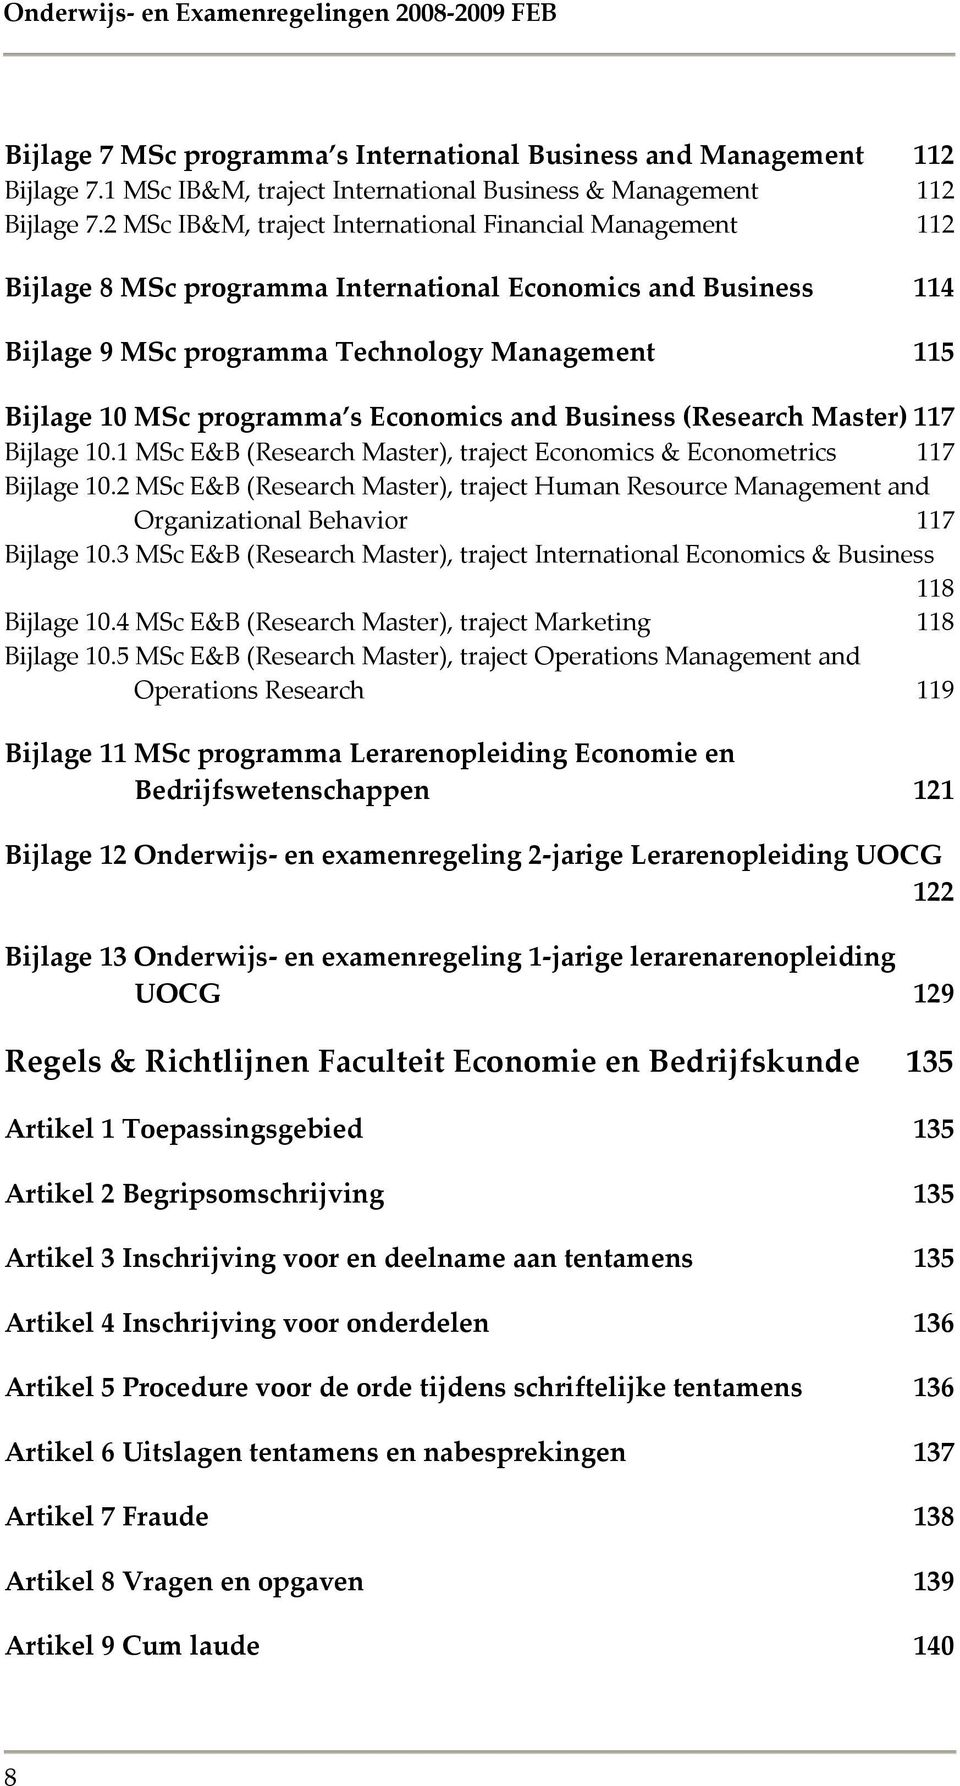 s Economics and Business (Research Master) 117 Bijlage 10.1 MSc E&B (Research Master), traject Economics & Econometrics 117 Bijlage 10.